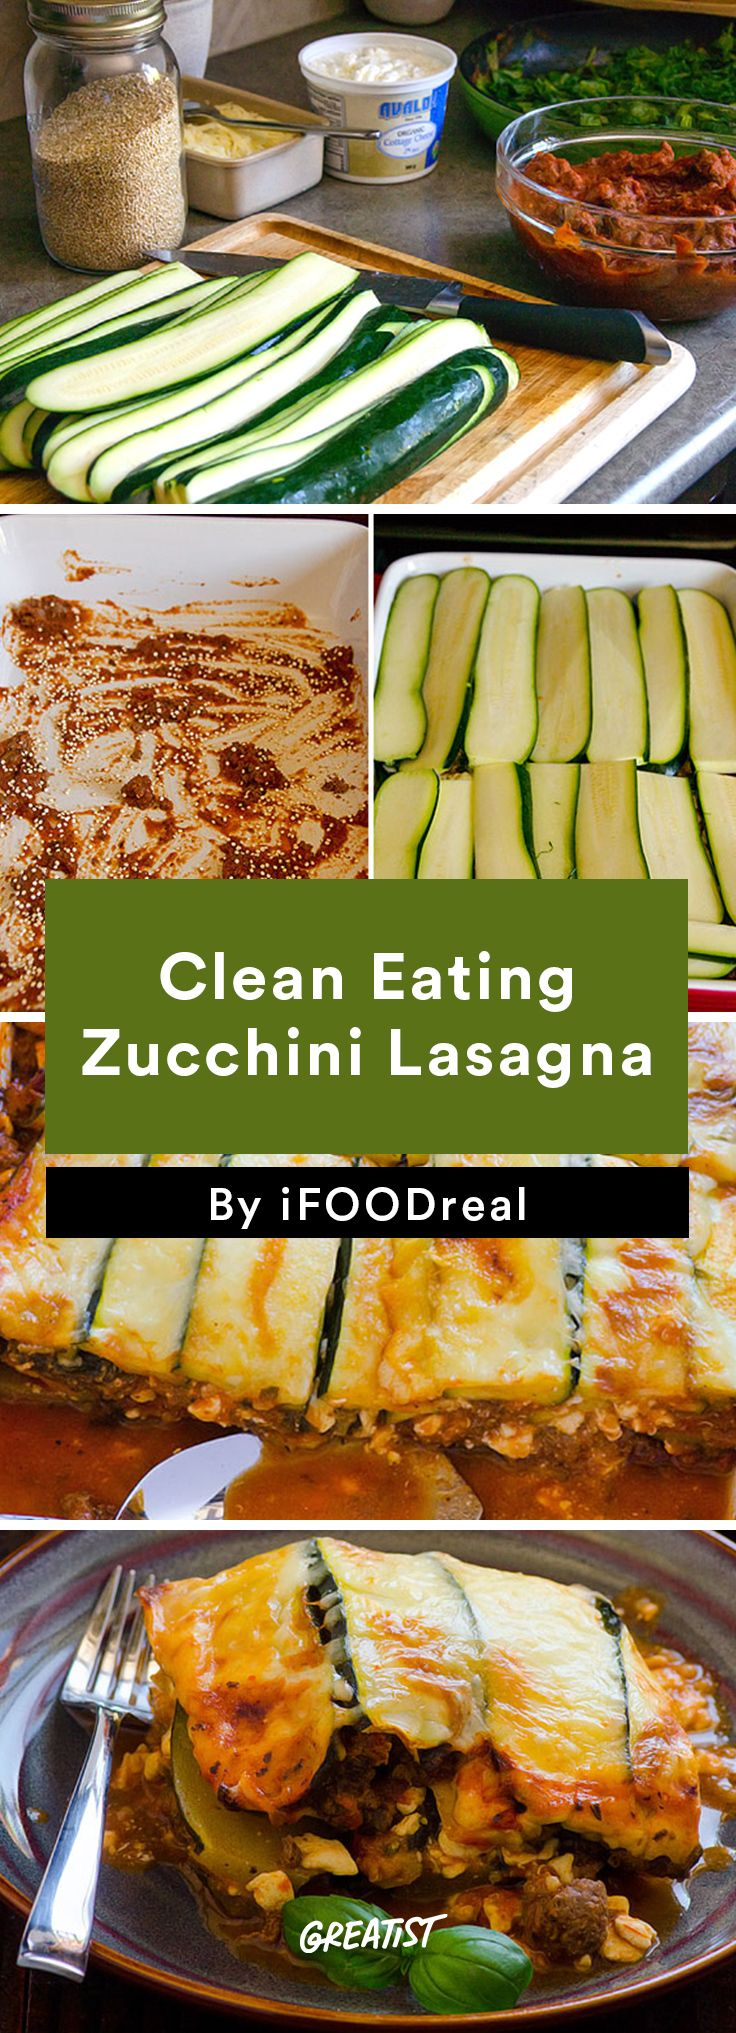 7 Surprisingly Easy Clean Eating Dinners #cleaneating